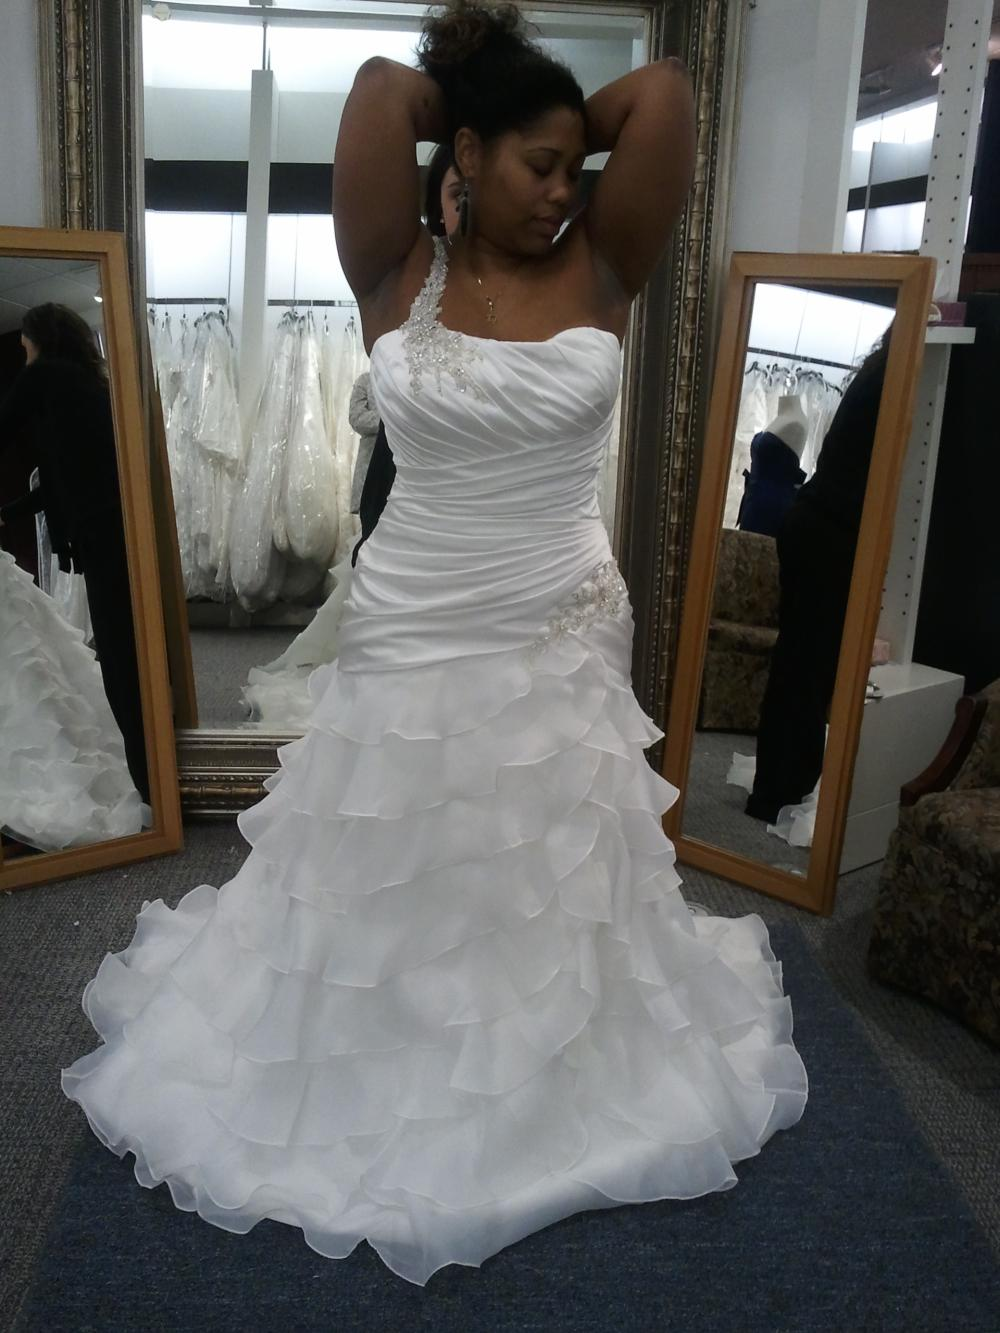 Show us your wedding dress!